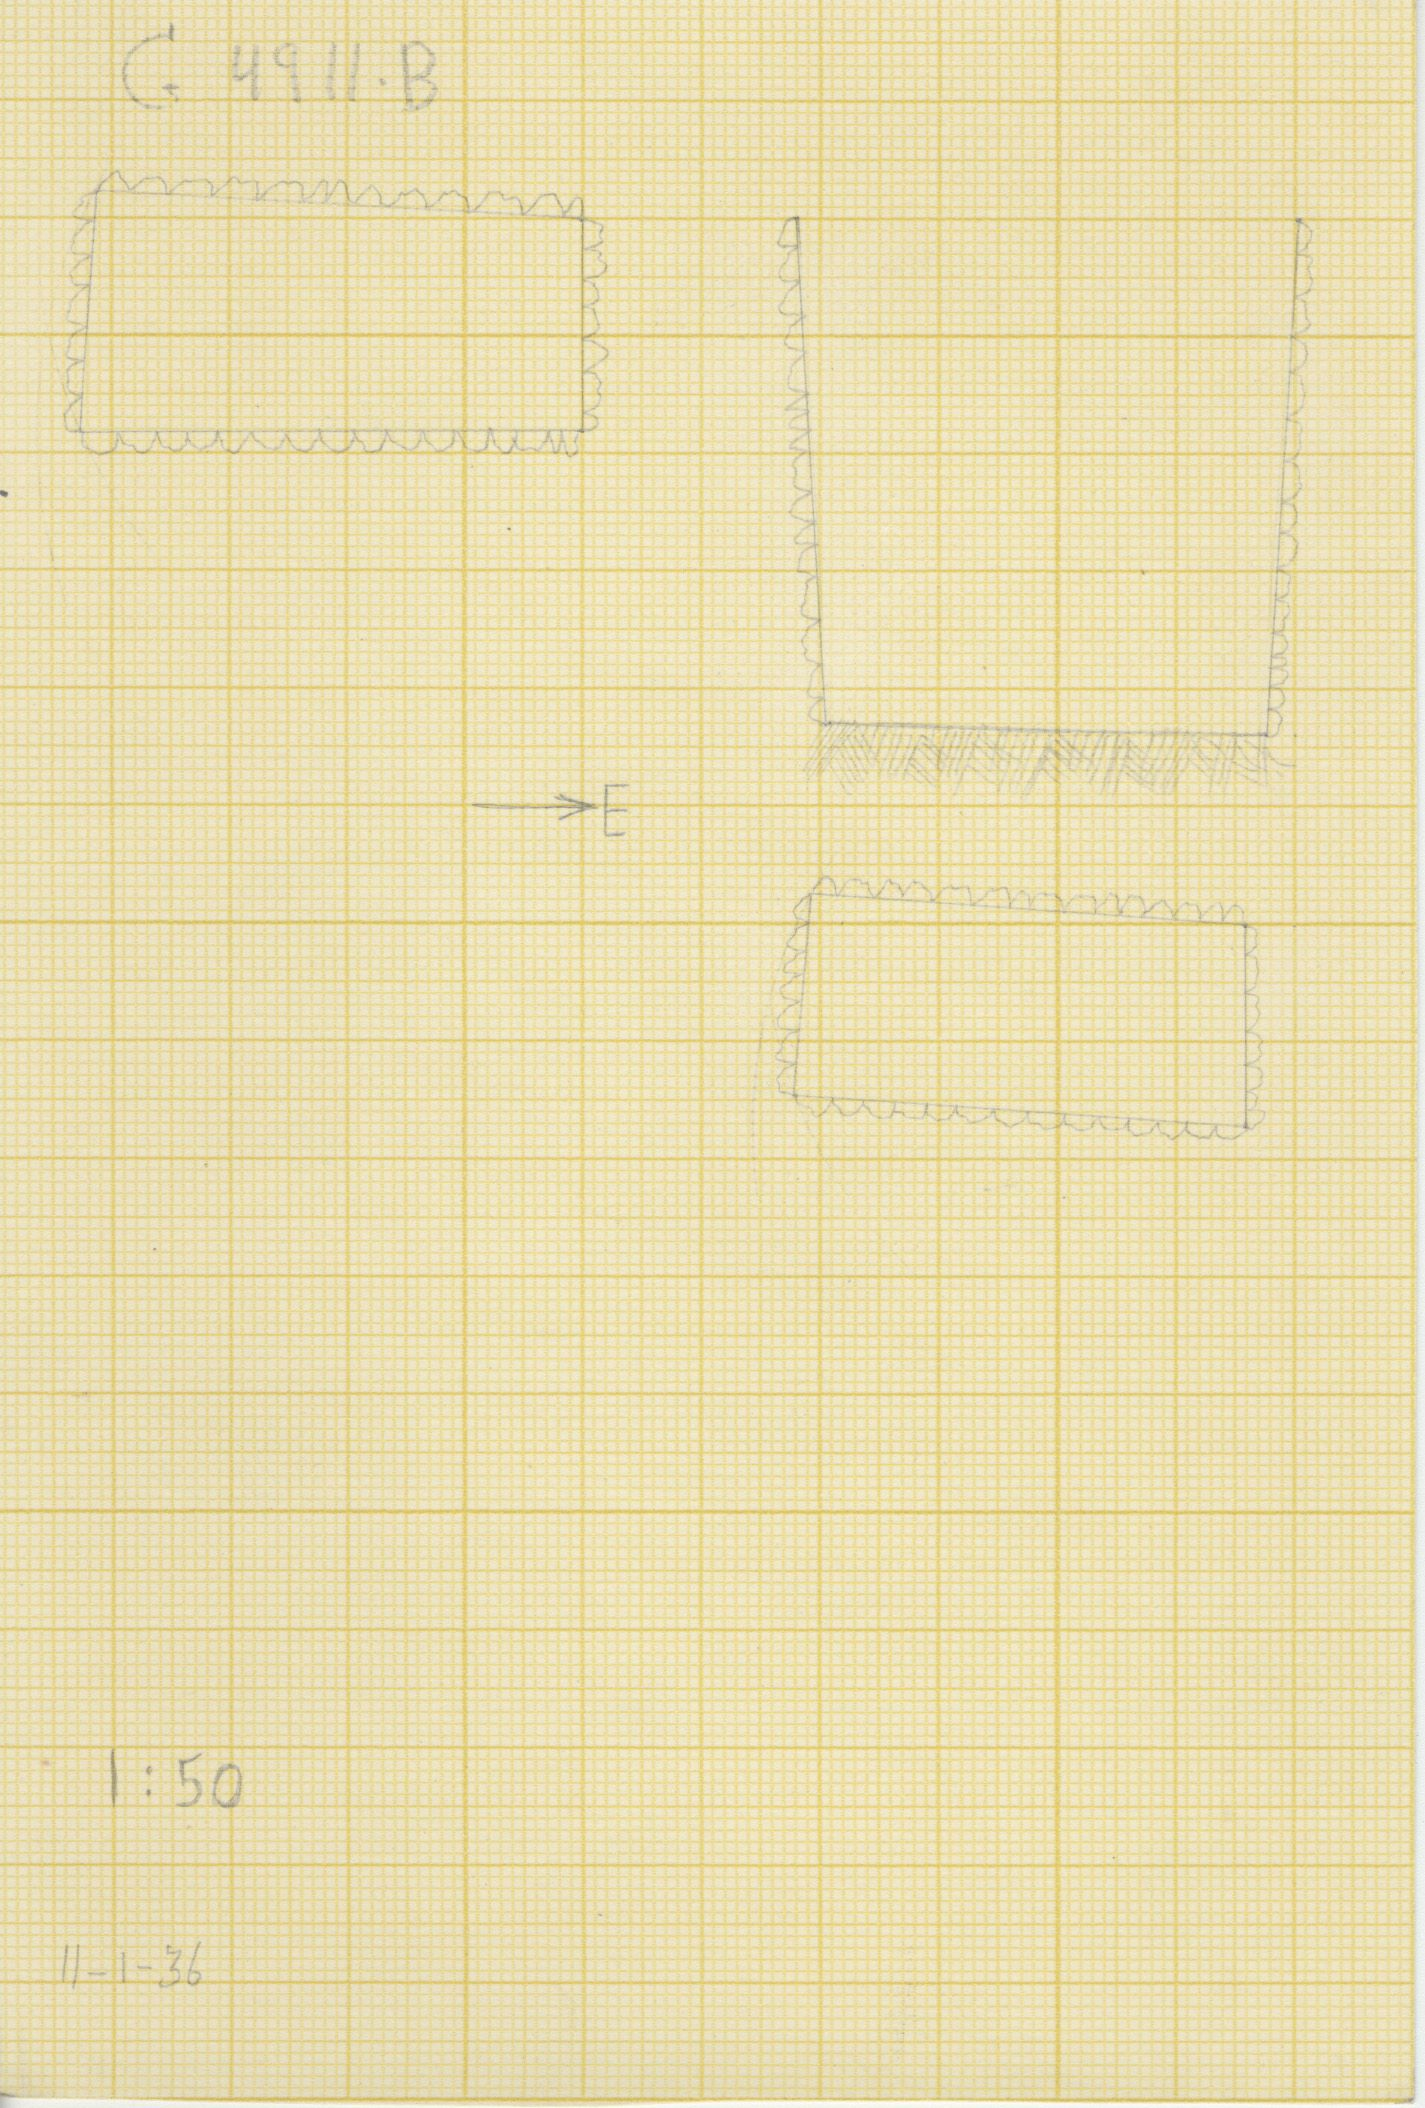 Maps and plans: G 4911, Shaft B